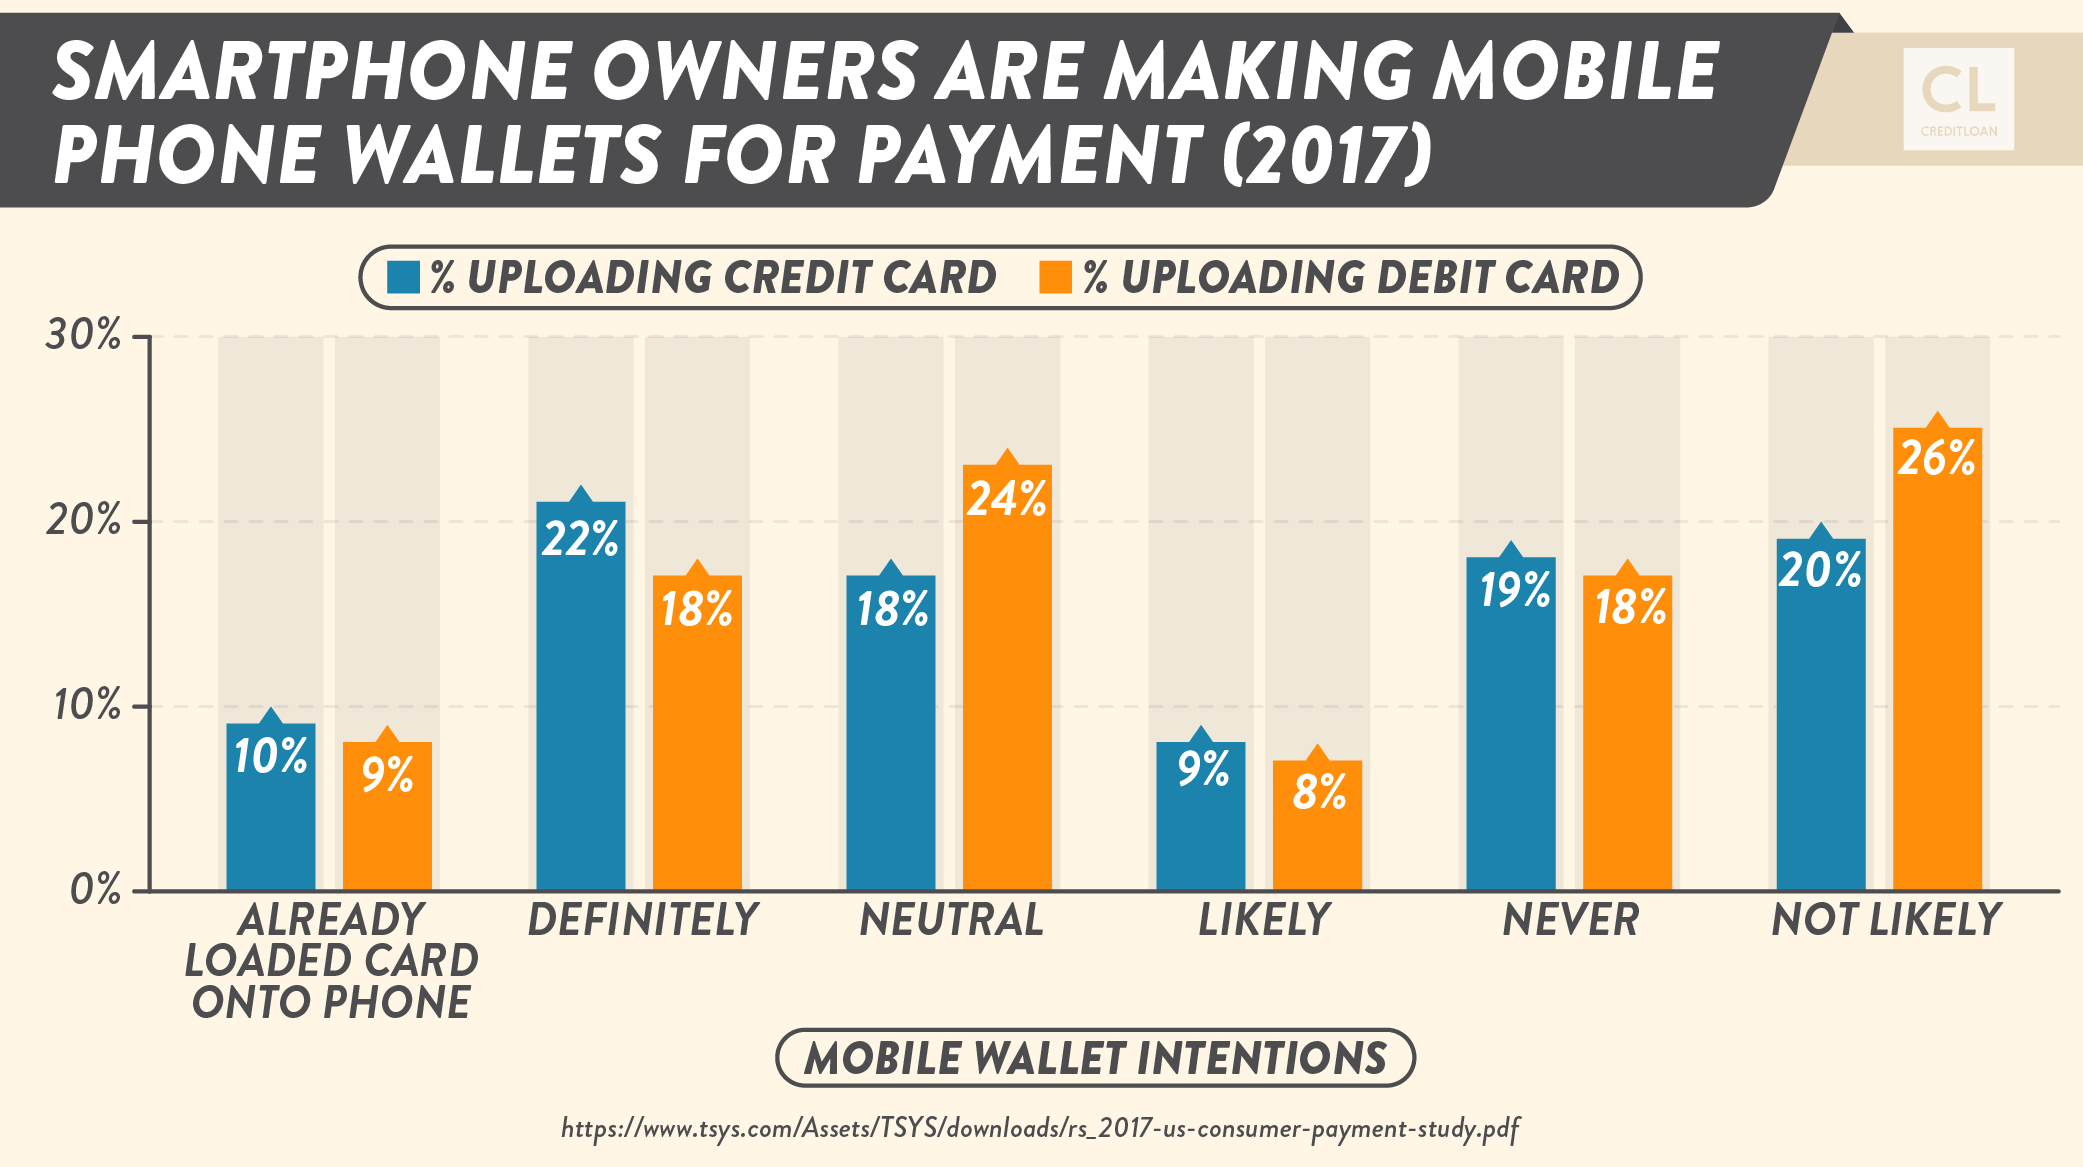 Smartphone Owners are Making Mobile Phone Wallets for Payment